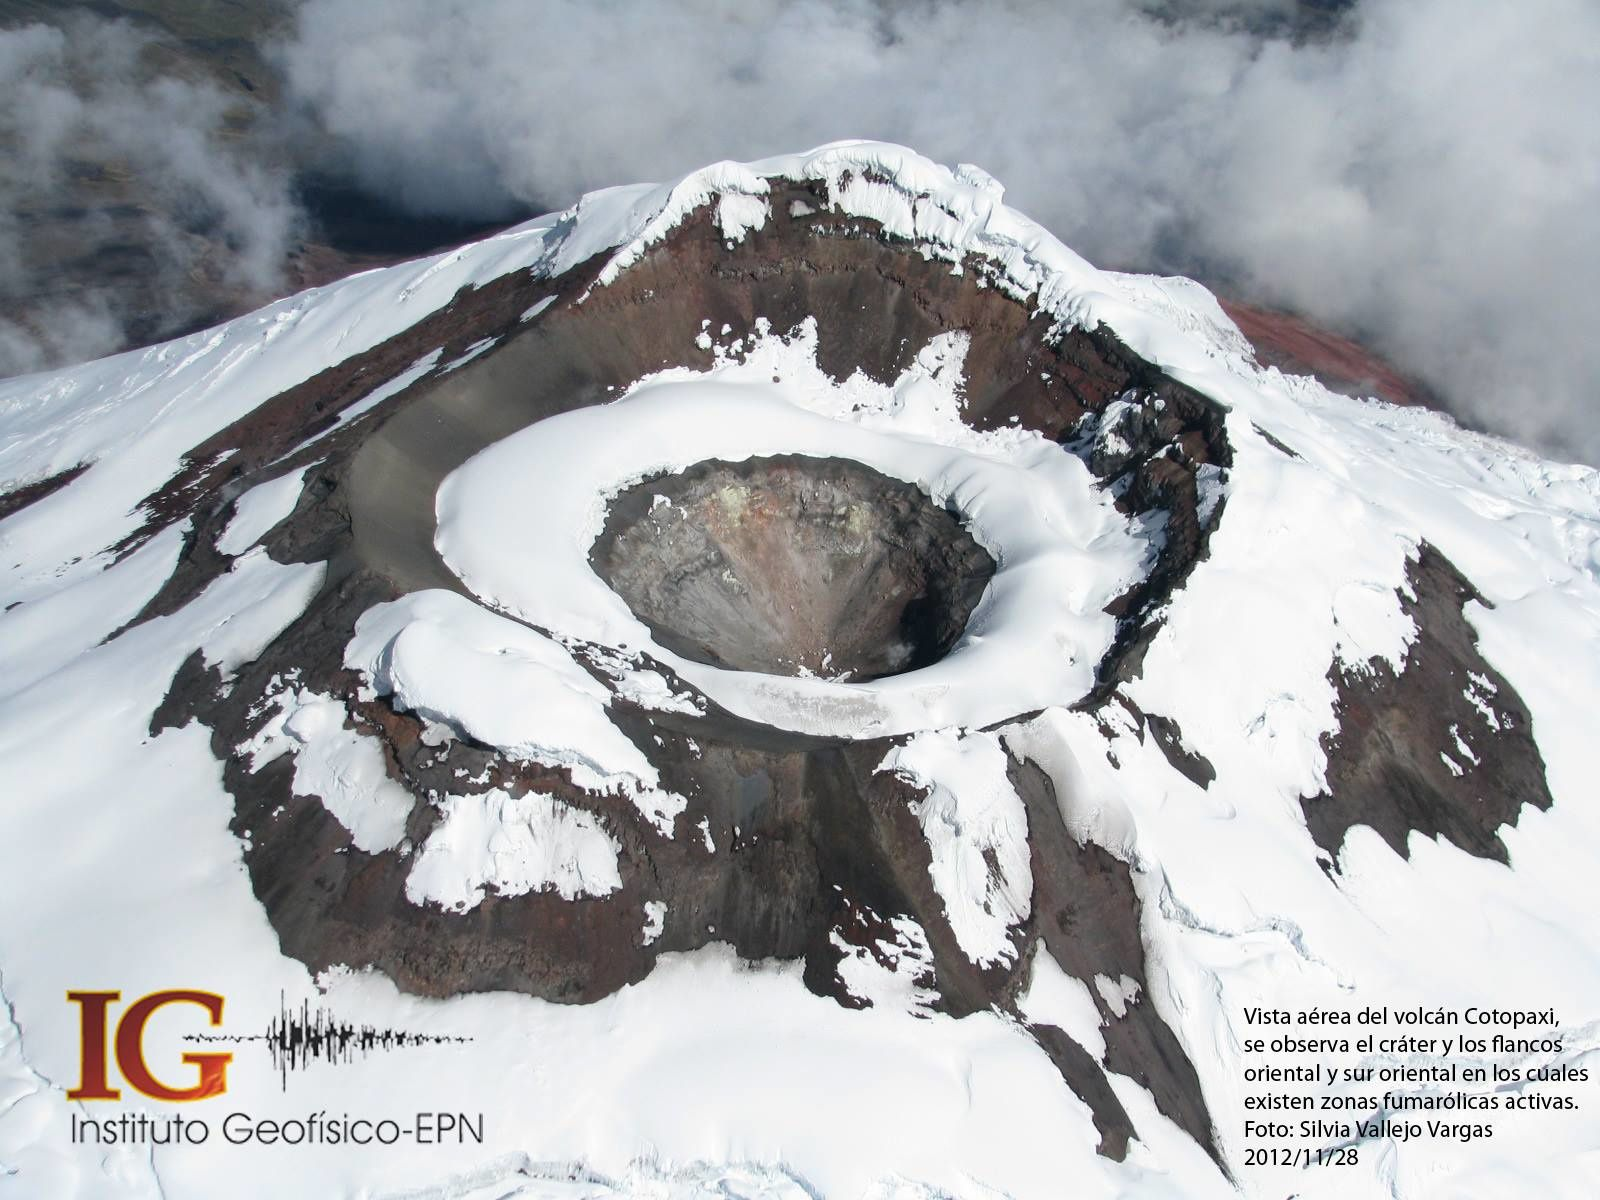 Cotopaxi - top, partial melting of the circular intra-crateric glacier / P.Ramon / IGEPN - down, compared with a view of the crater and its glacier 28.01.2012 / SVVargas / IGEPN